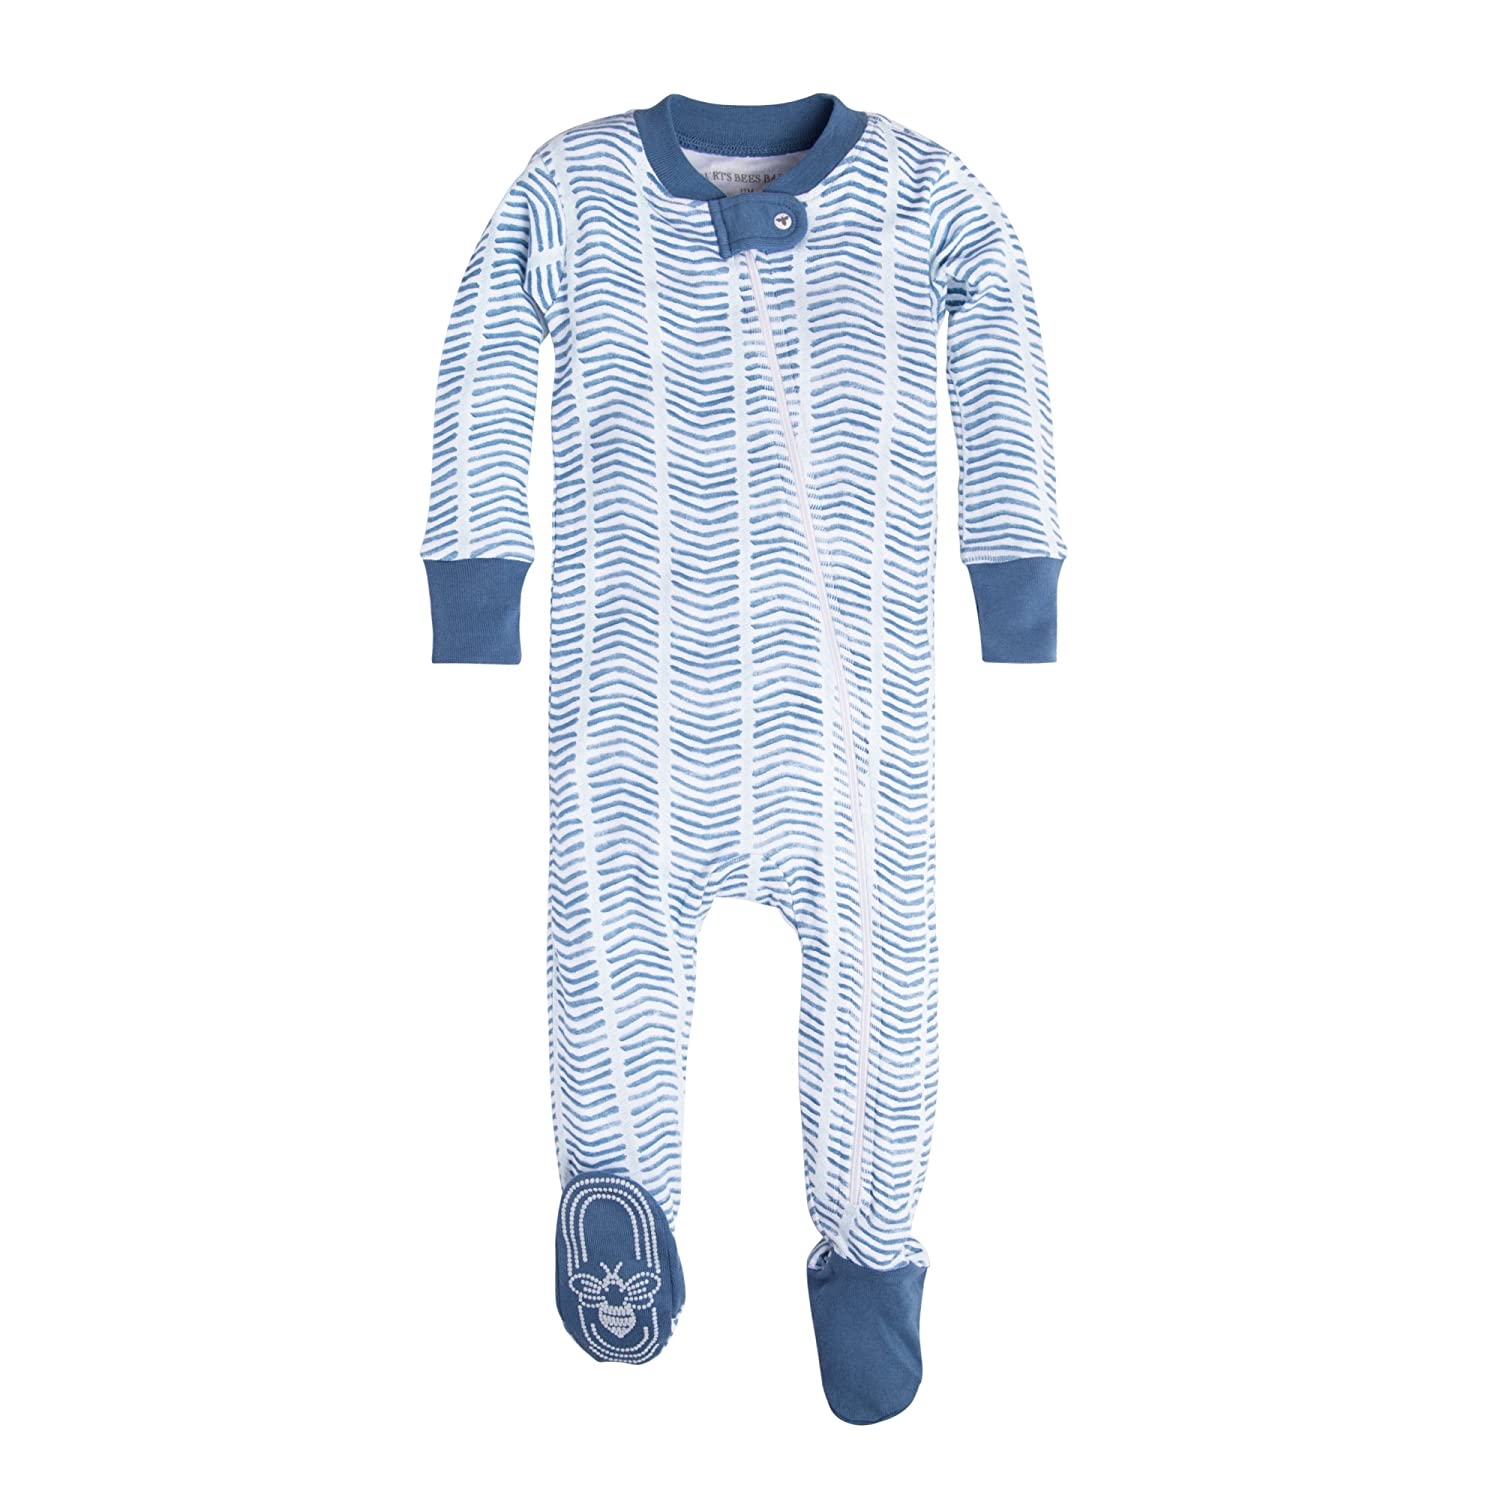 Burt's Bees Baby Baby-Boys Infant Organic Print Zip Front Non-Slip Footed Sleeper Pajamas Blue Star Watercolor Chevron 24 Months Burt' s Bees Baby LY24928